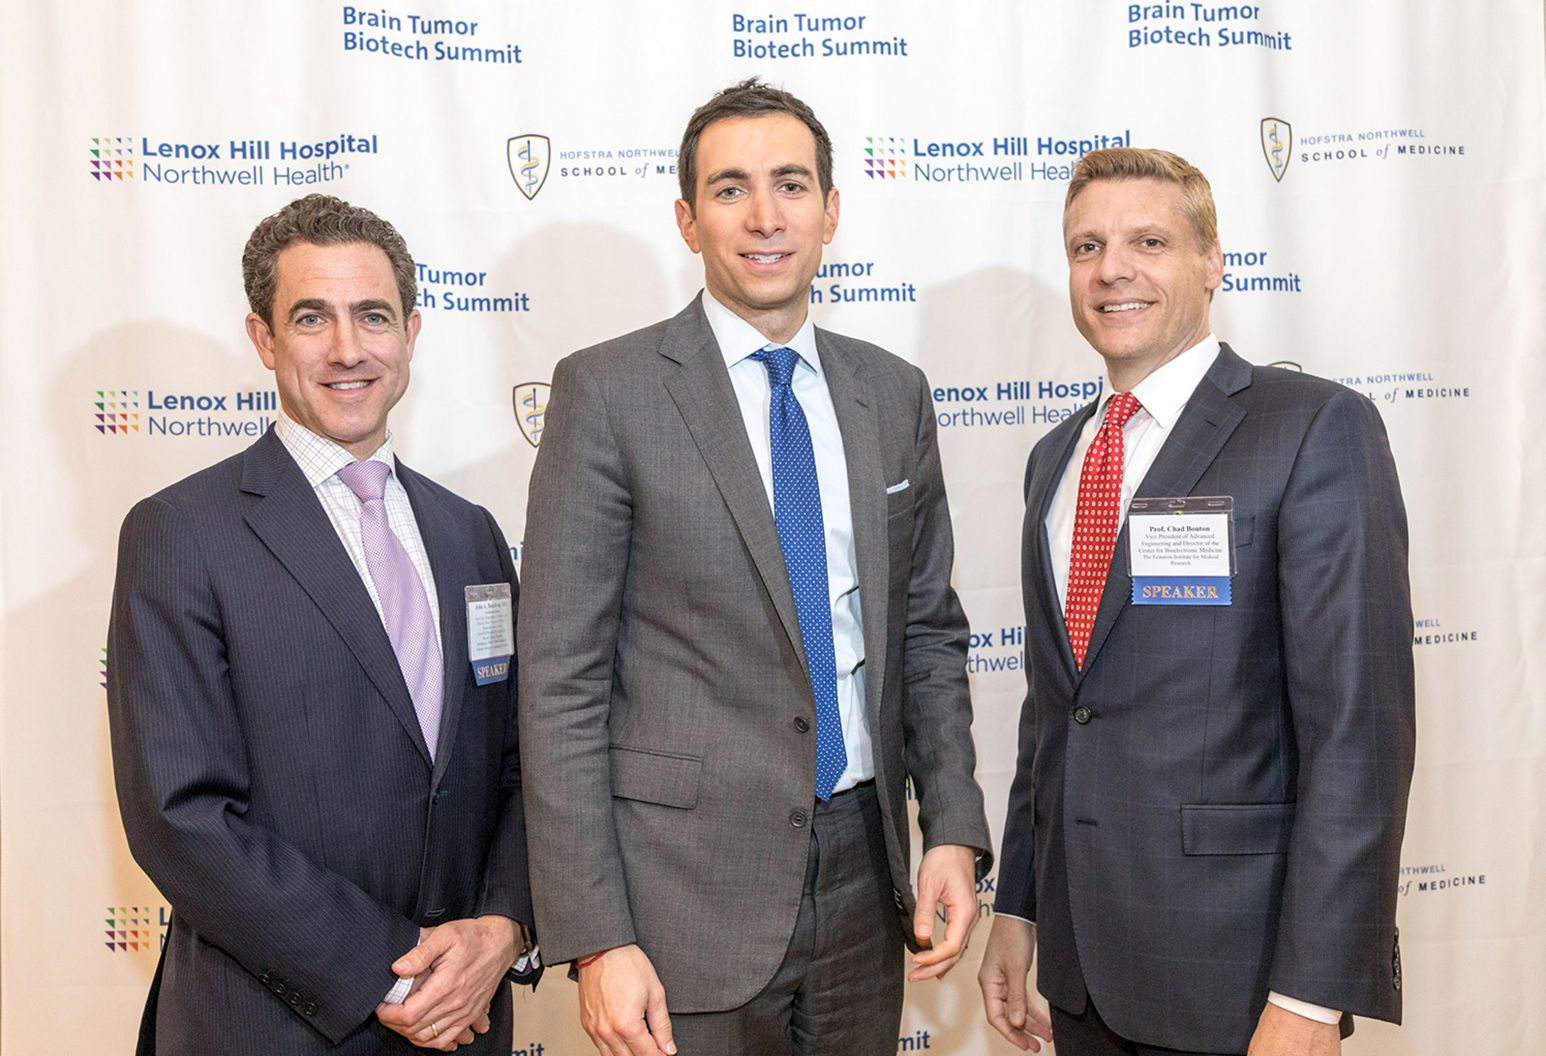 Three male doctors wearing suits are standing in front of backdrop that shows the Lenox Hill Hospital and Hofstra/Northwell School of medicine logos